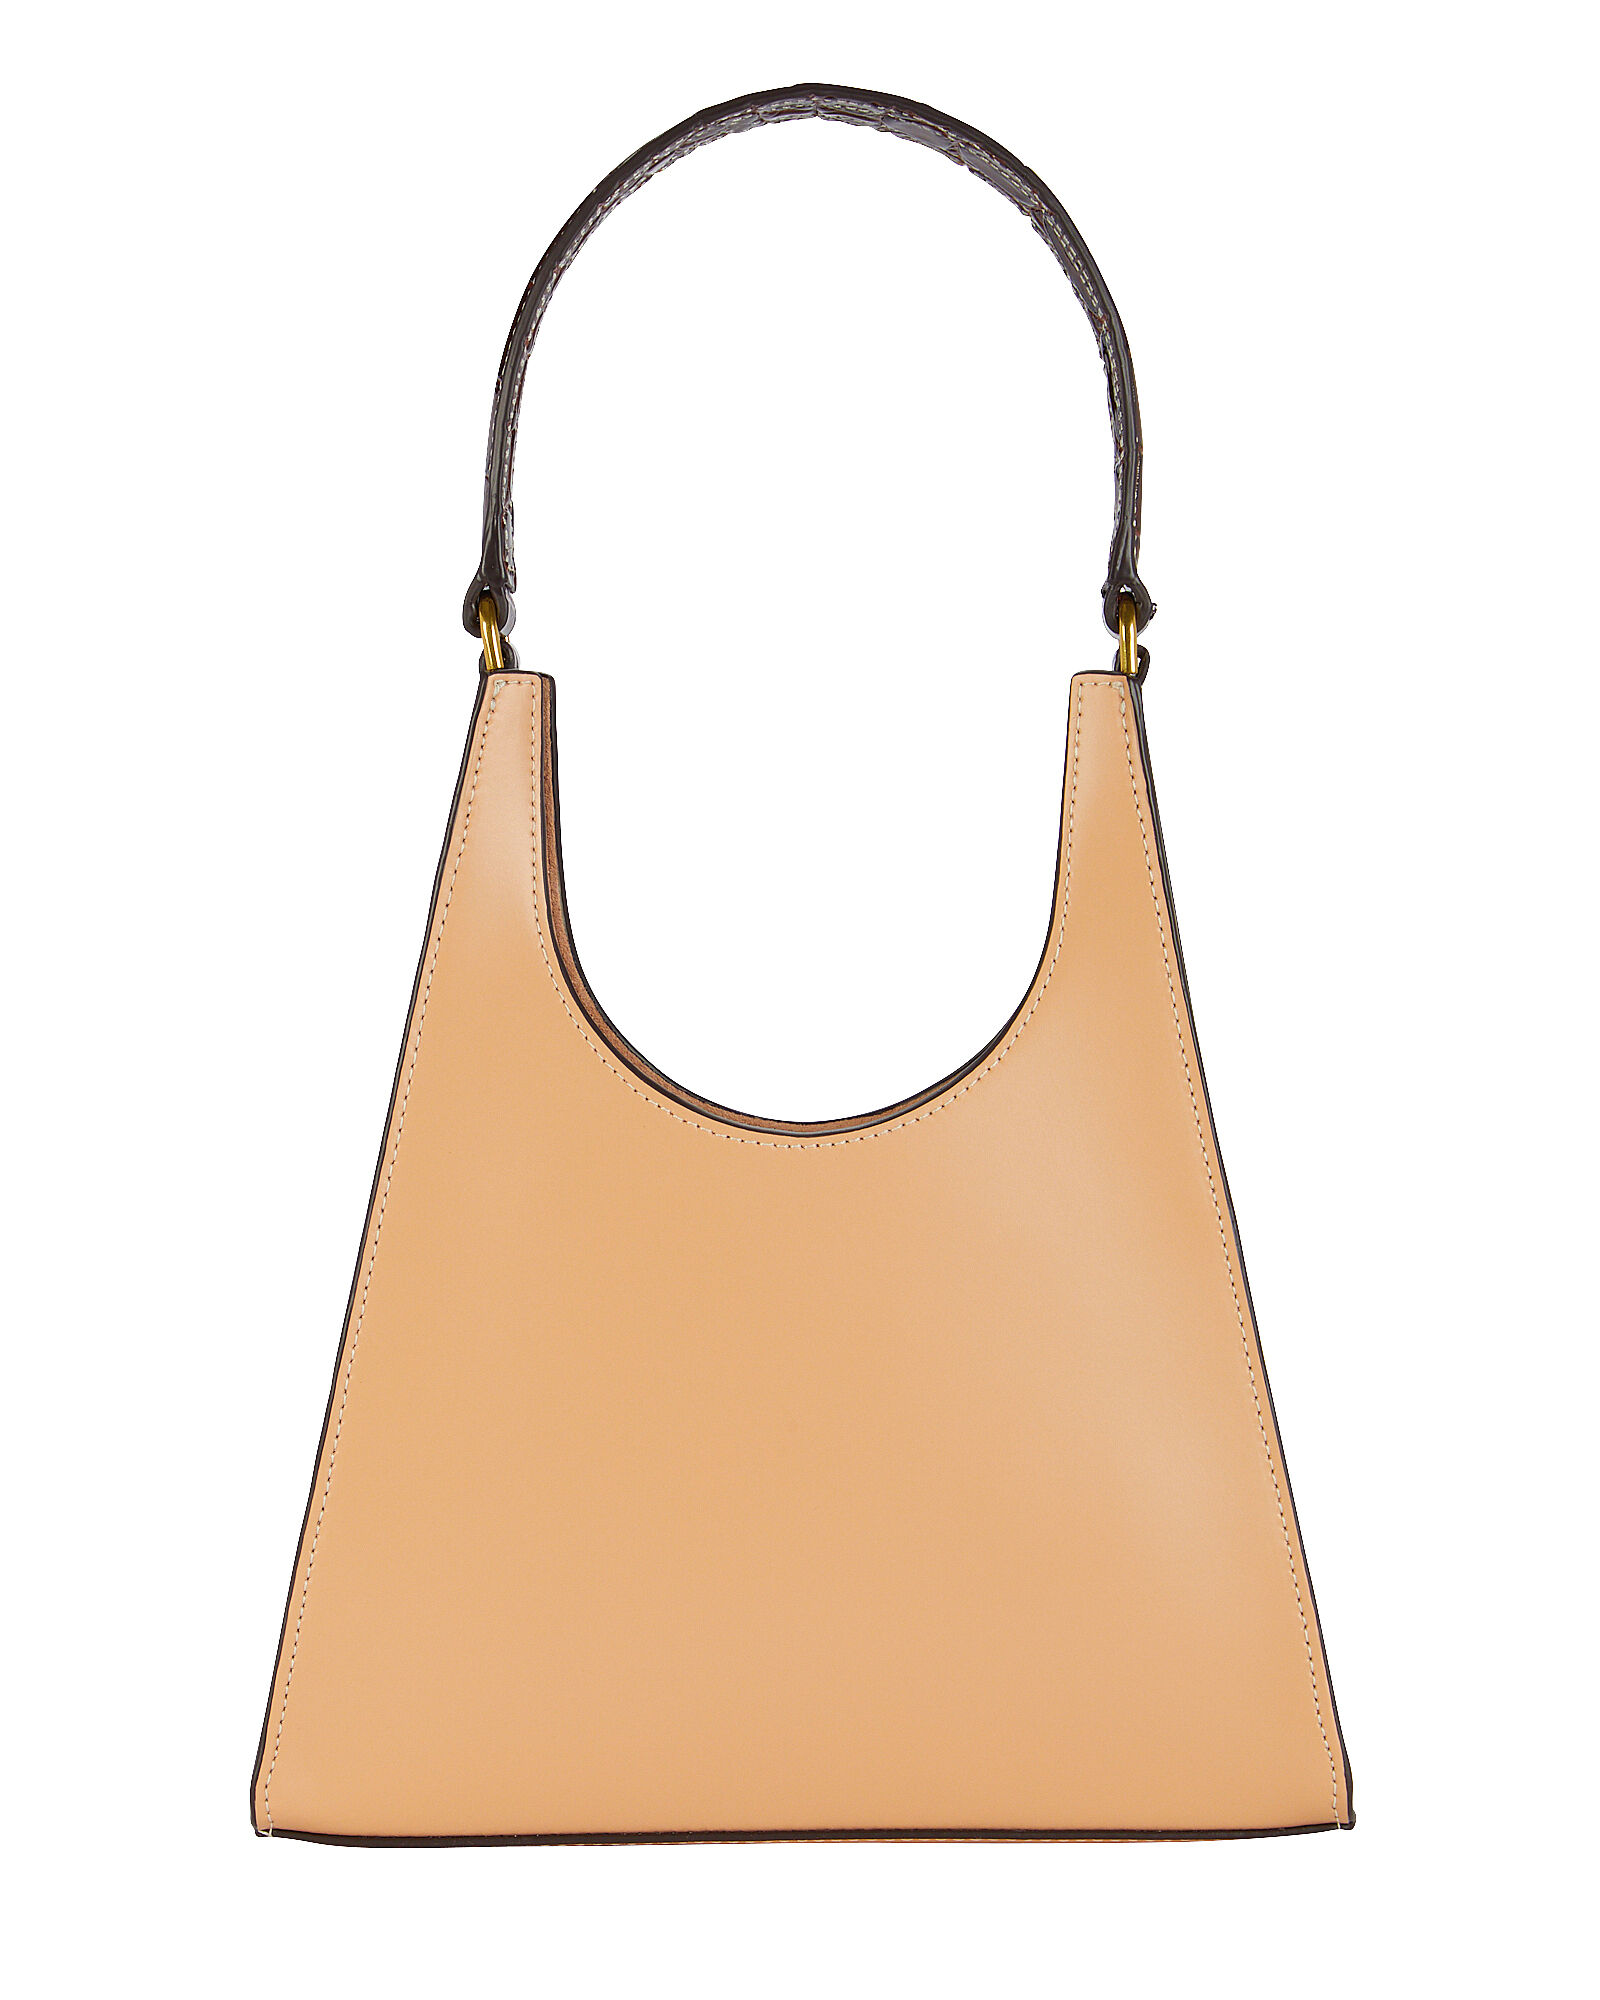 Rey Leather Shoulder Bag, BEIGE, hi-res